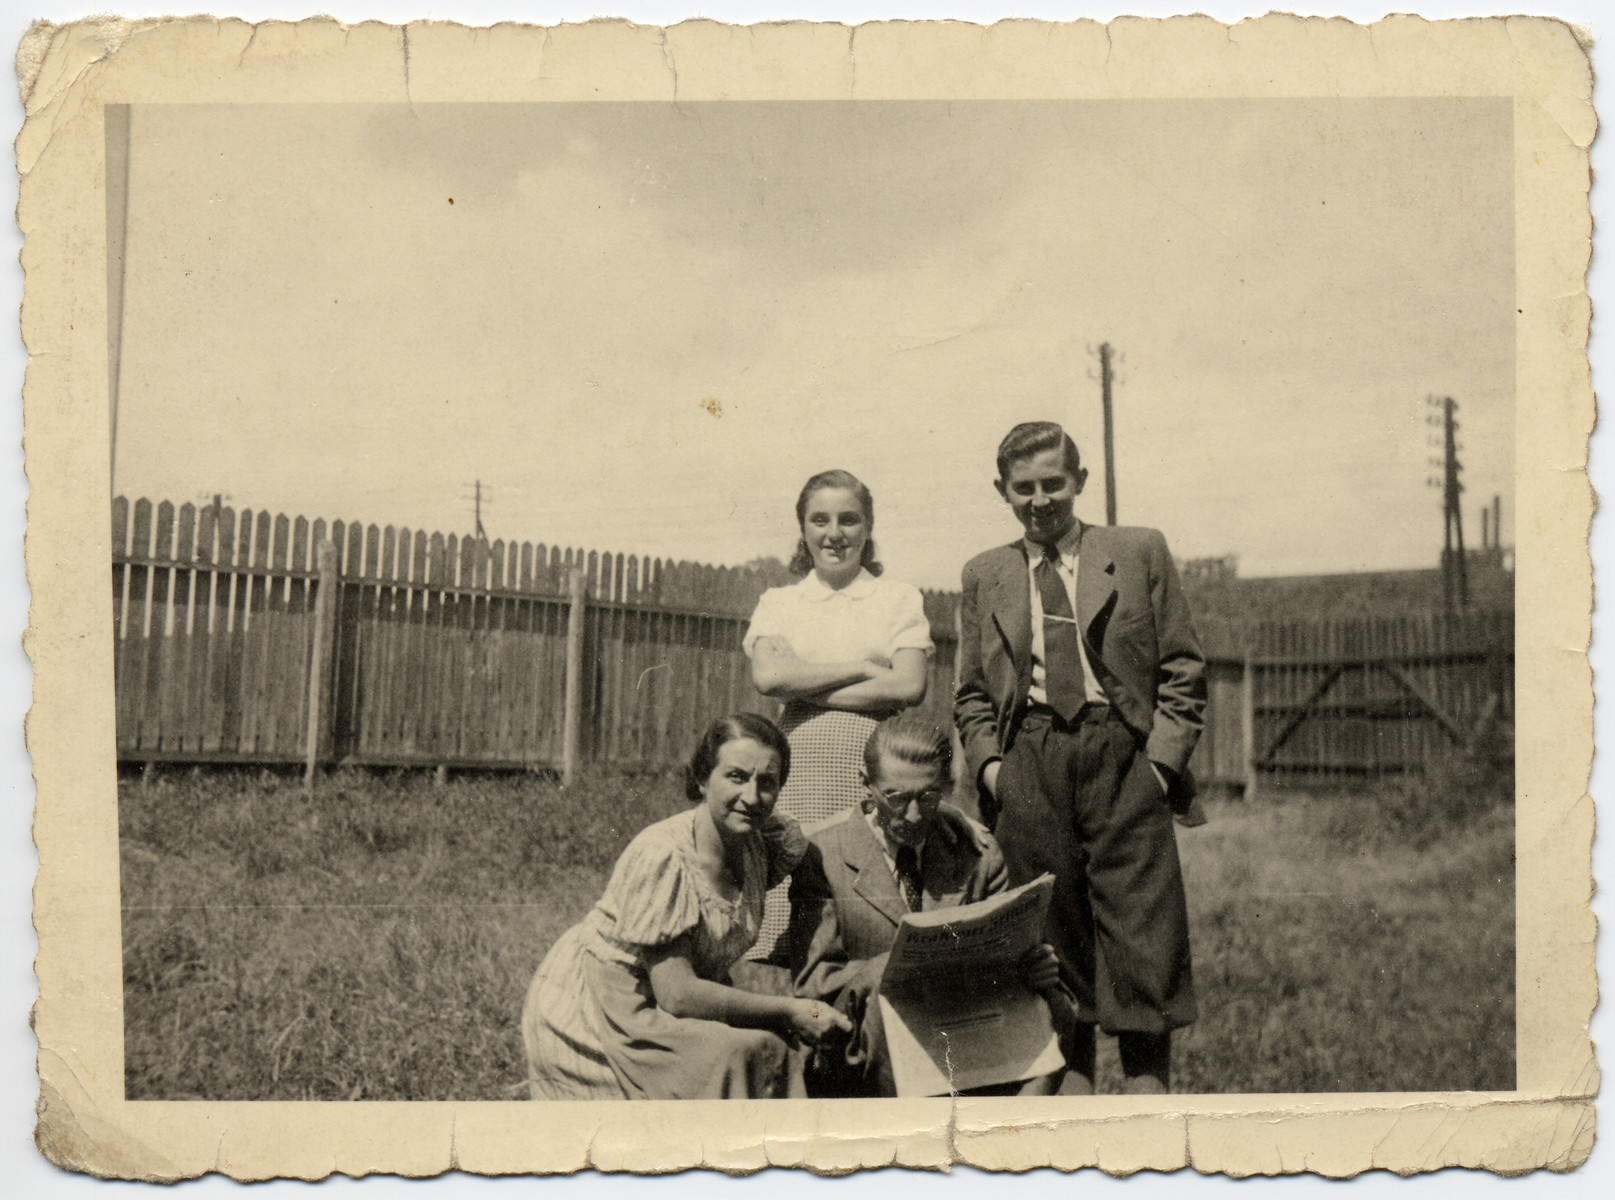 A Jewish Czechoslovak family living in hiding poses for a photograph in a garden in Krakow.   Pictured are Gisela and Leo Kulka with their children Erica and Jan.